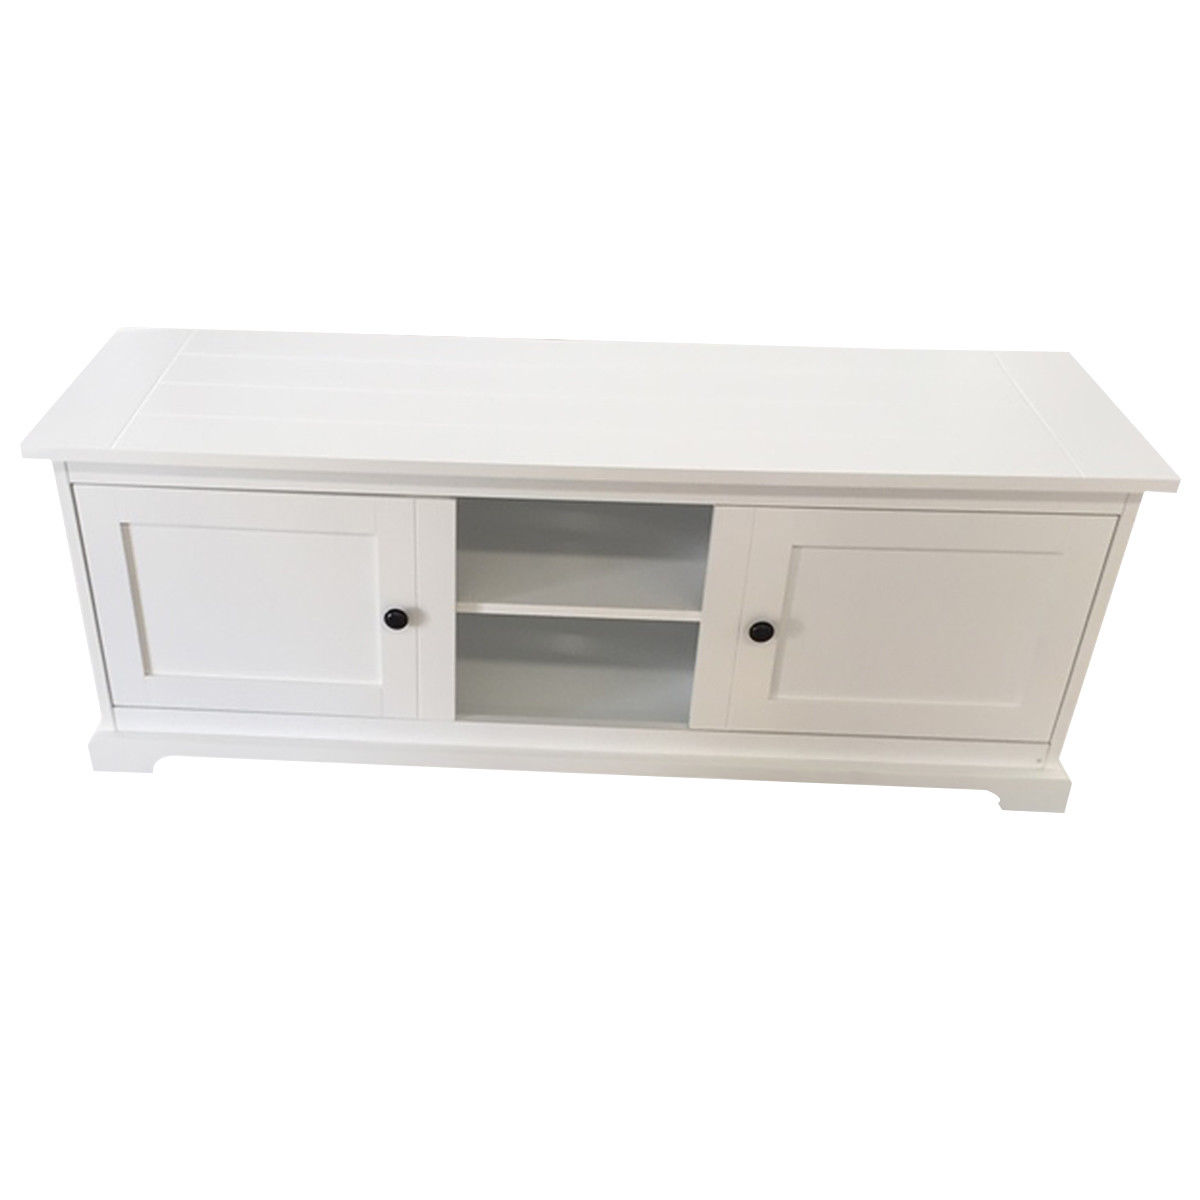 Modern tv cabinet media unit storage tv stand shelf media console furniture